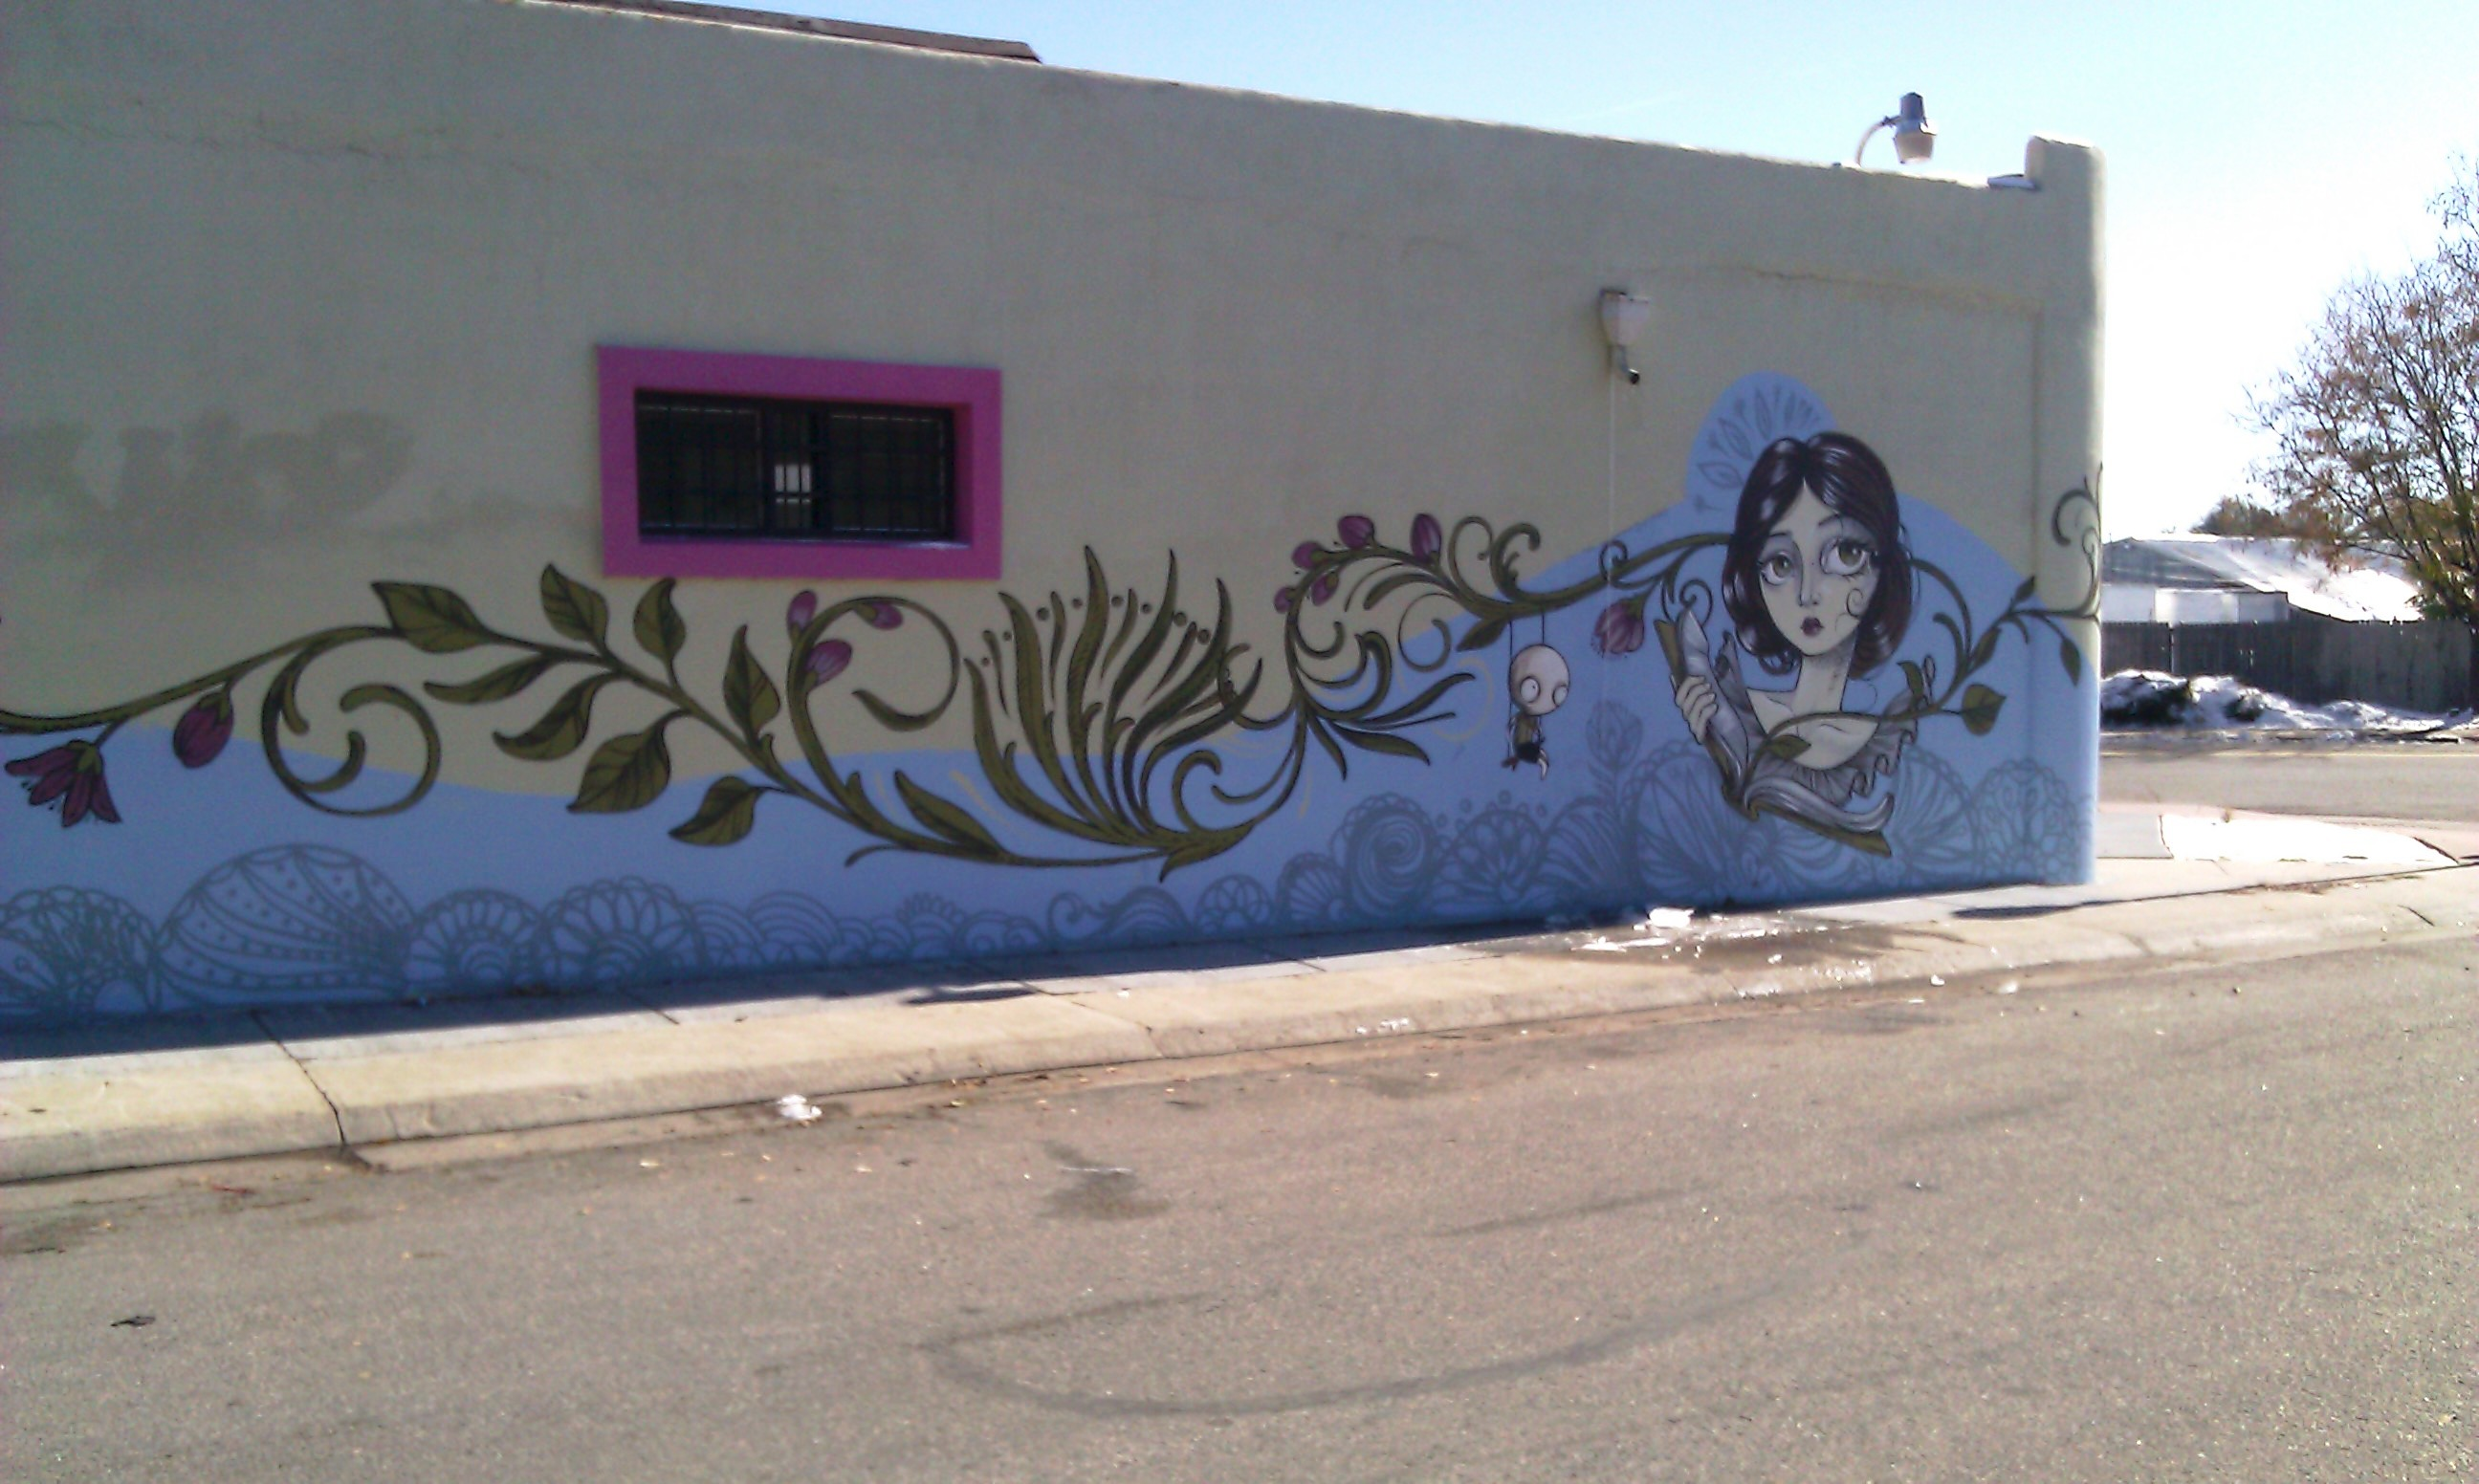 Go to the Sandi Calistro mural page